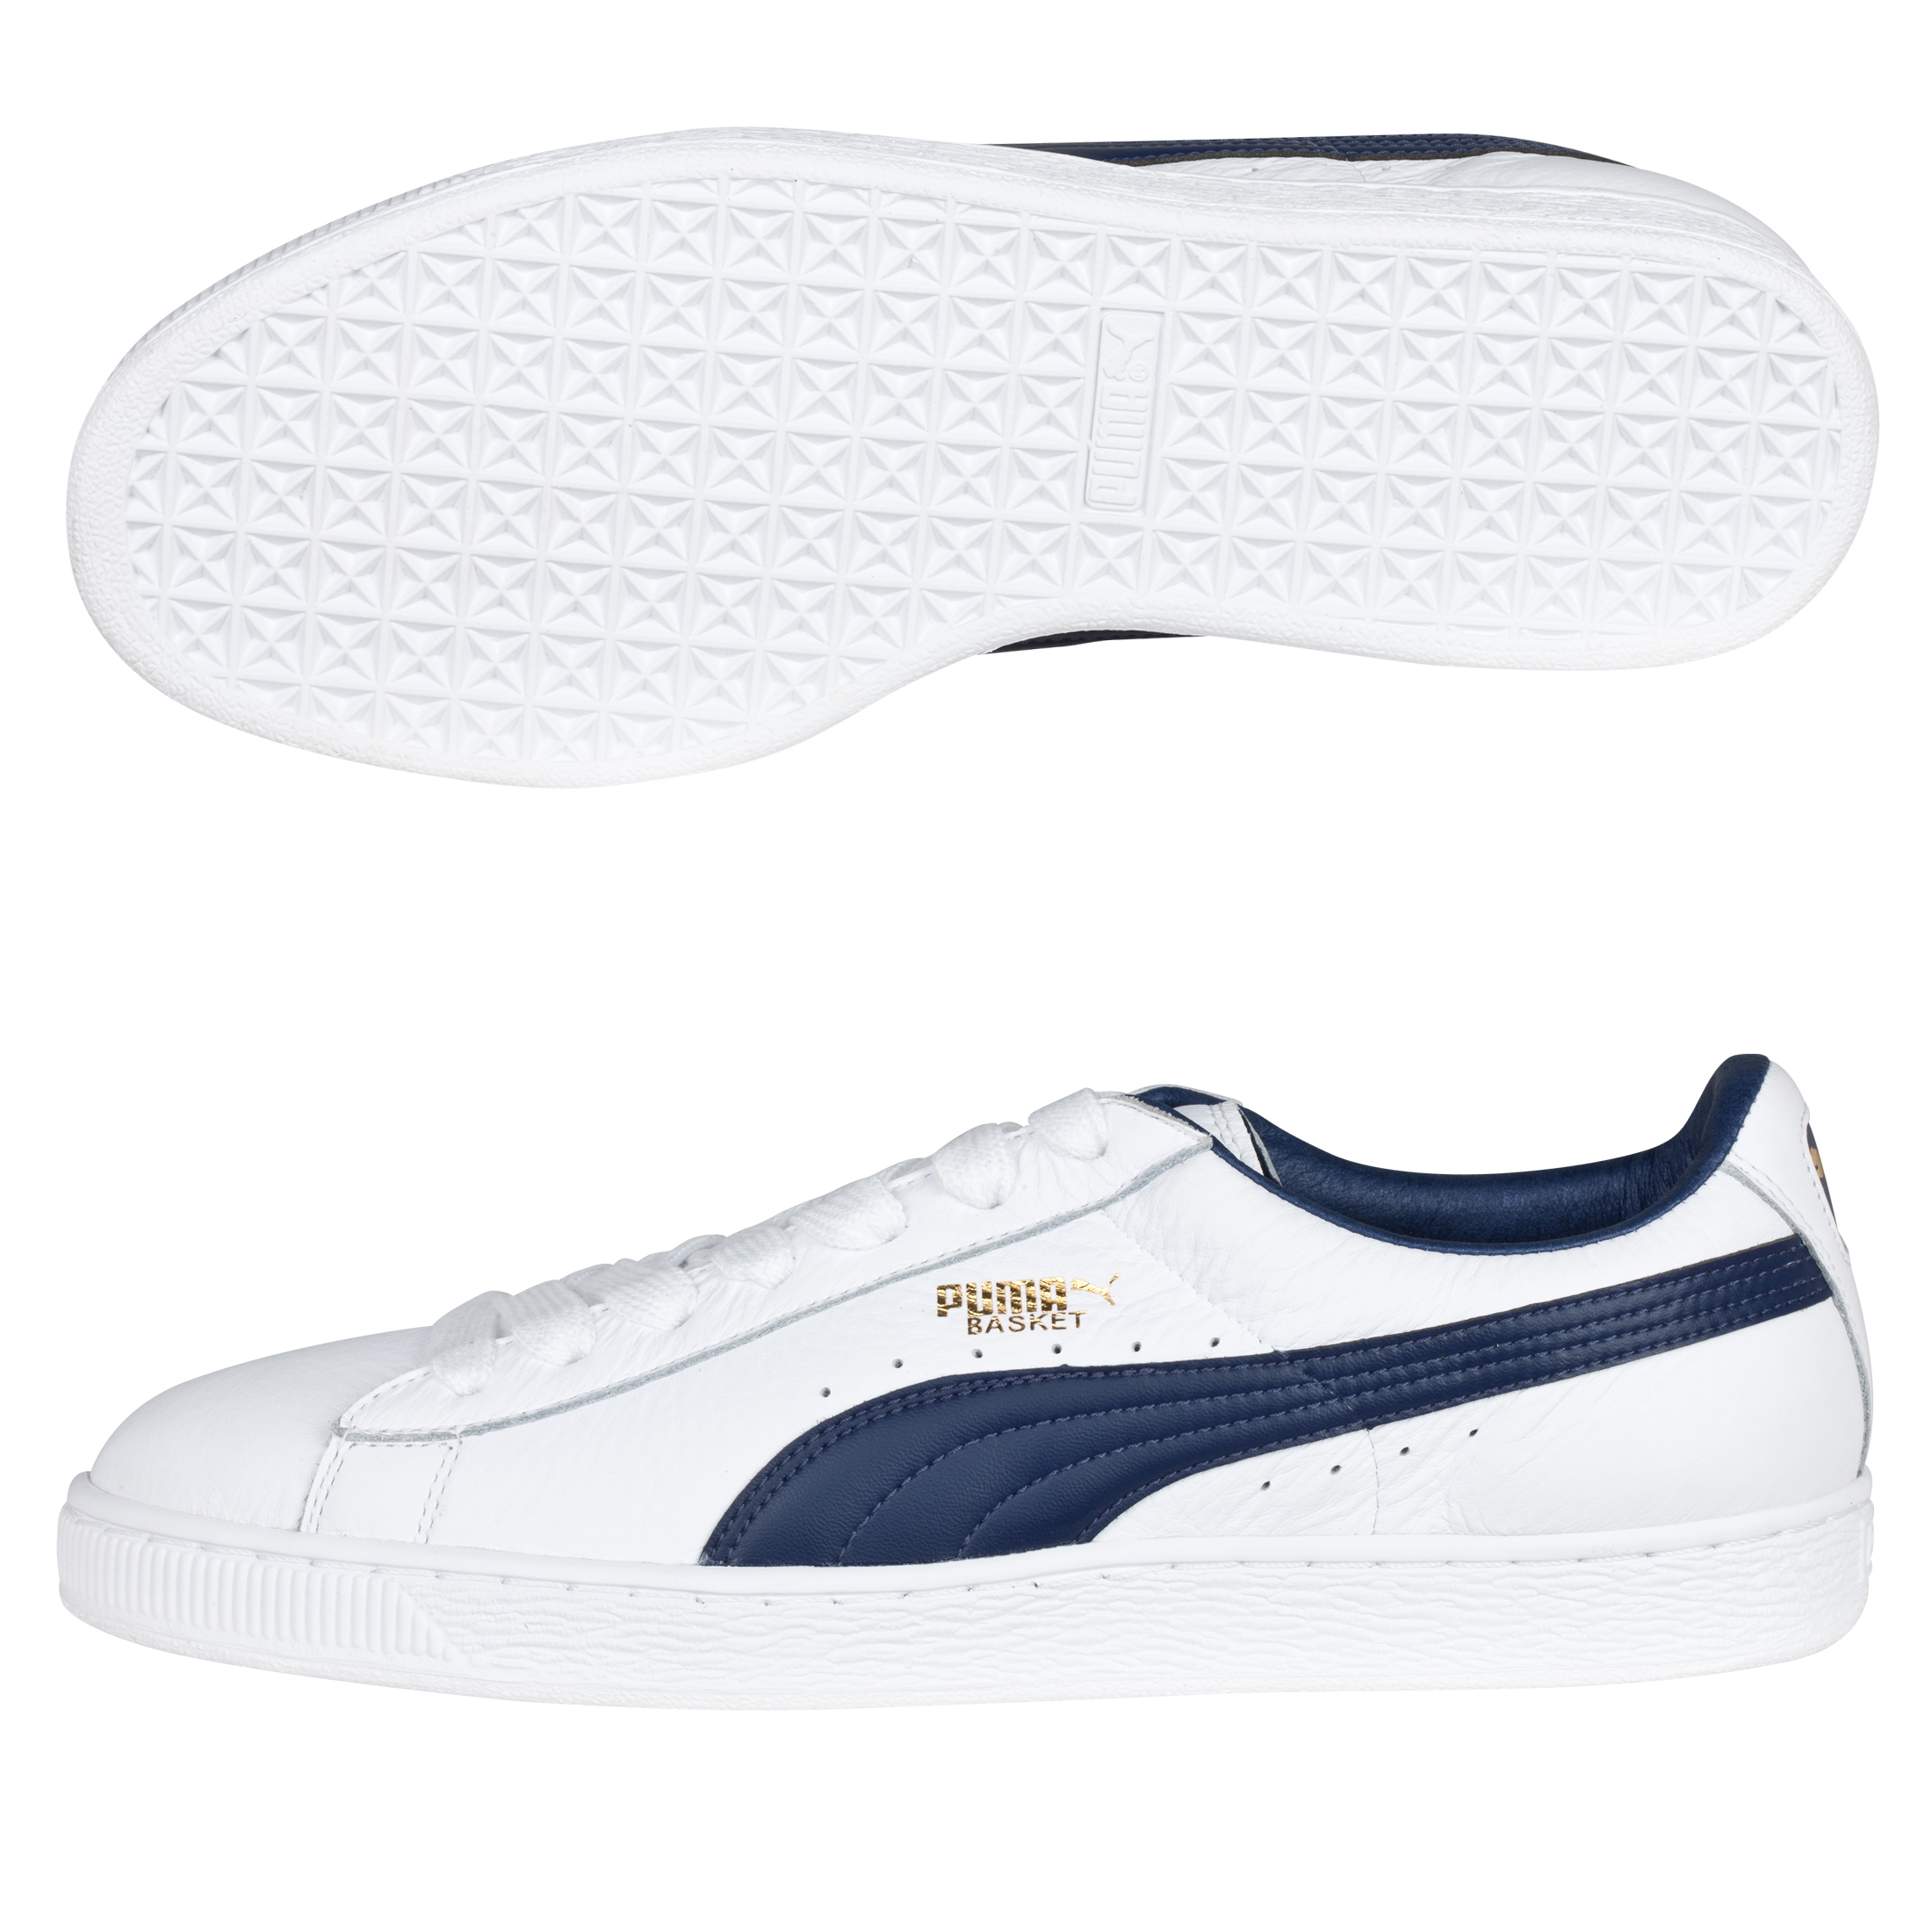 Puma Basket Classic Trainer - White/Medieval Blue